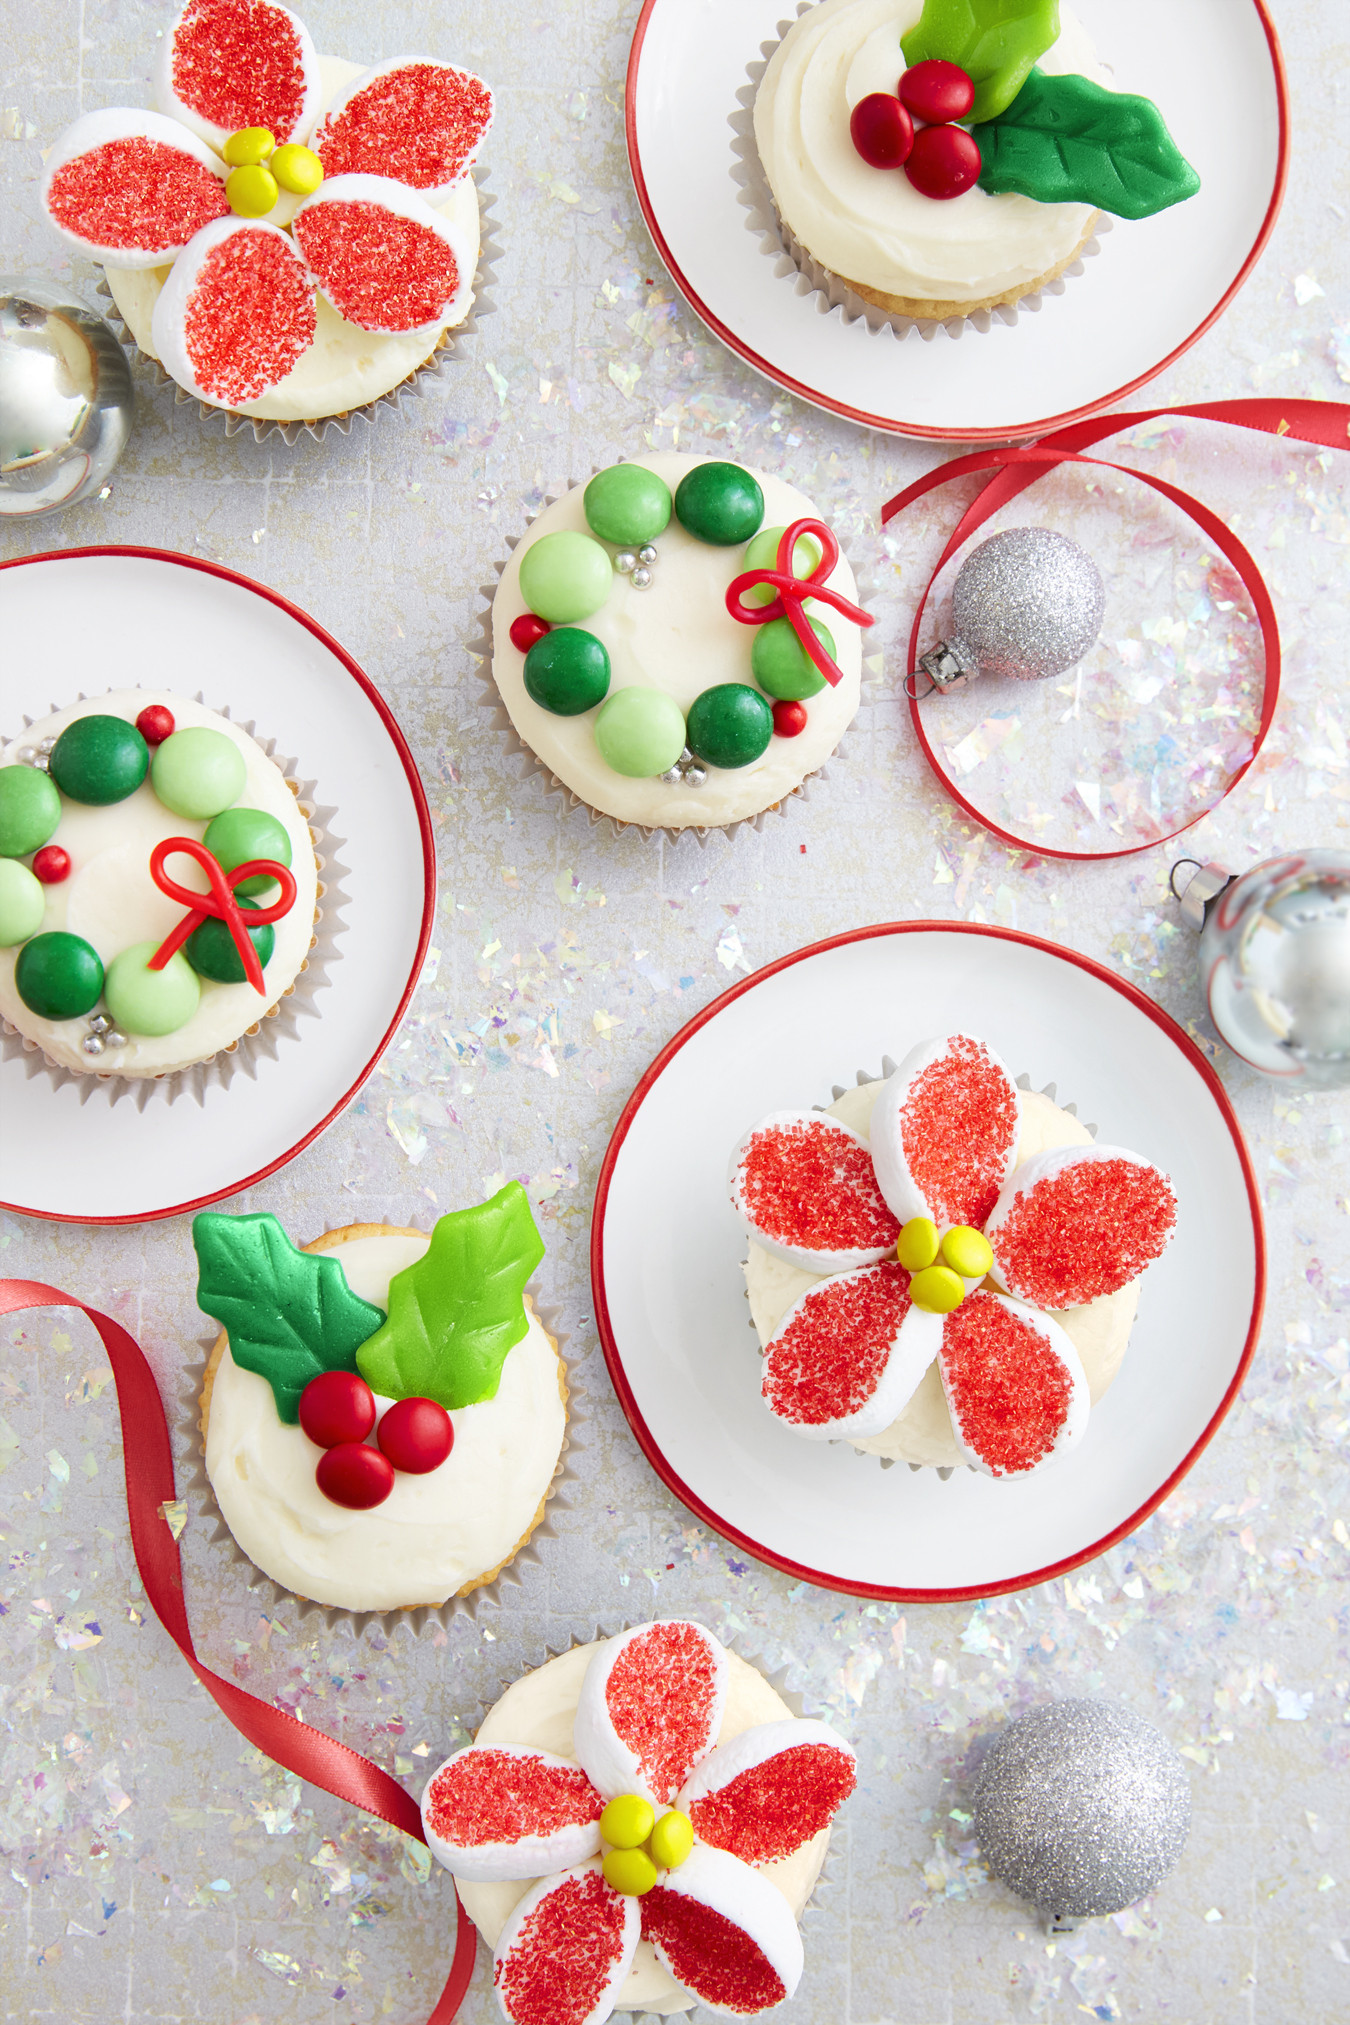 Pictures Of Christmas Desserts  Holiday Candy Cupcakes Recipe How To Make Christmas